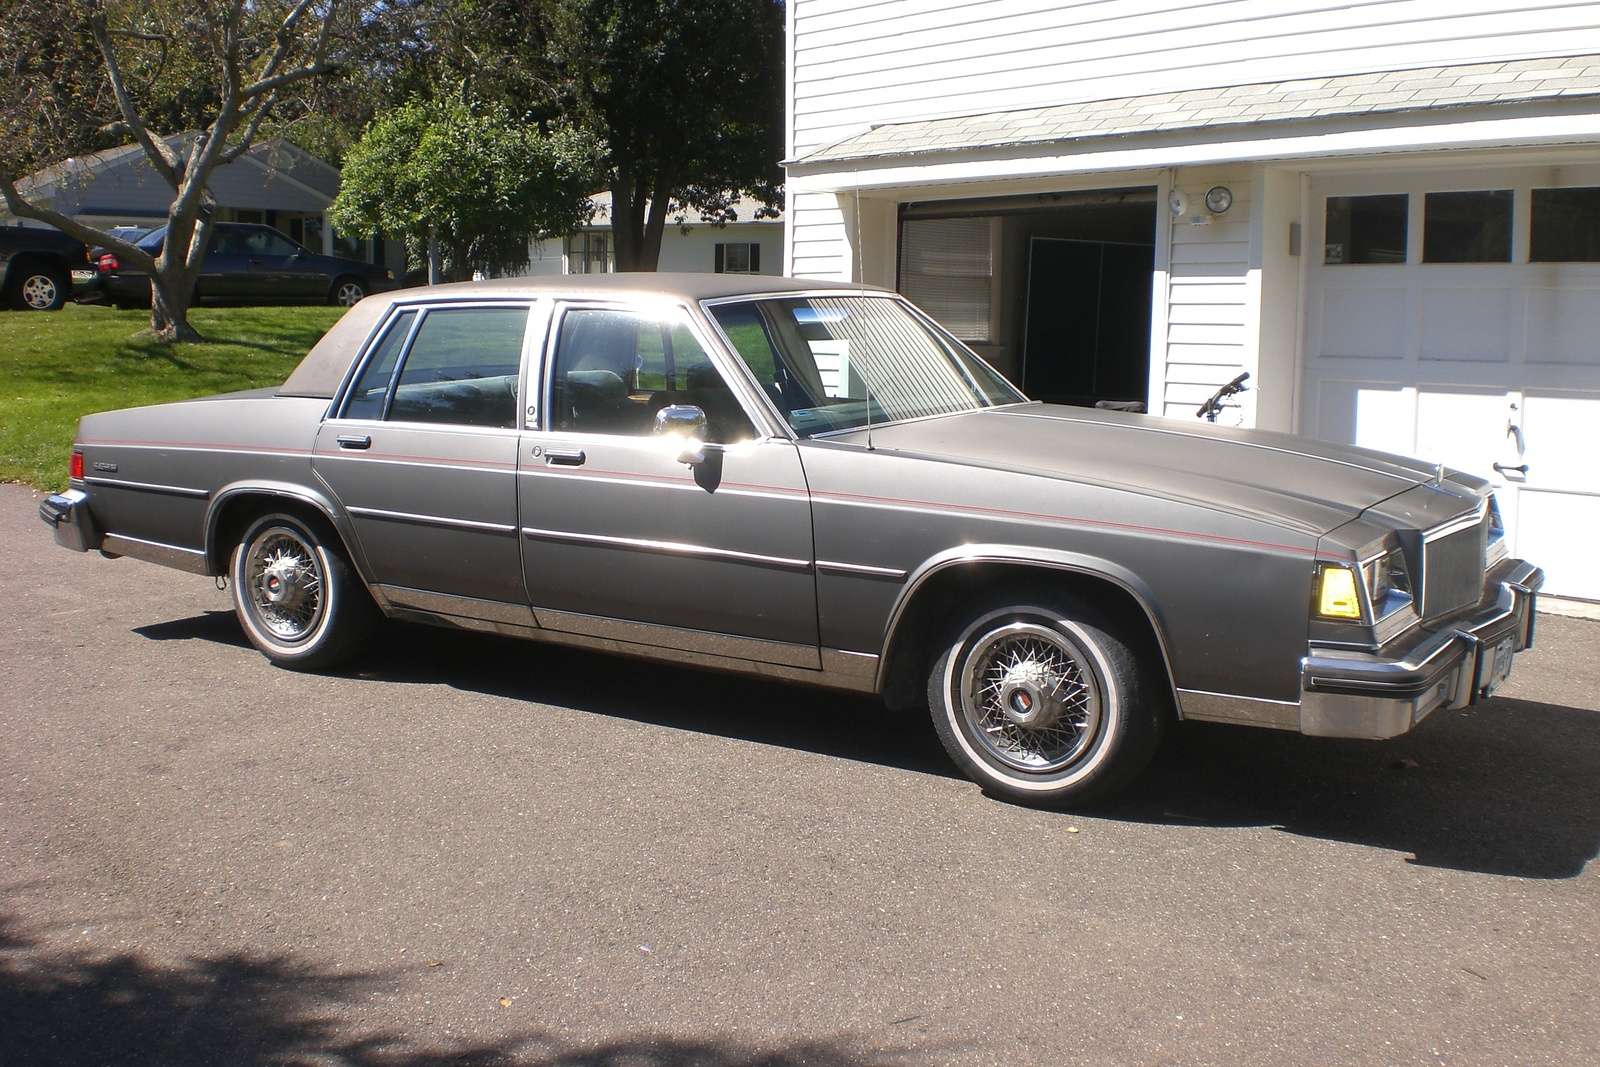 Picture of 1985 Buick LeSabre, exterior